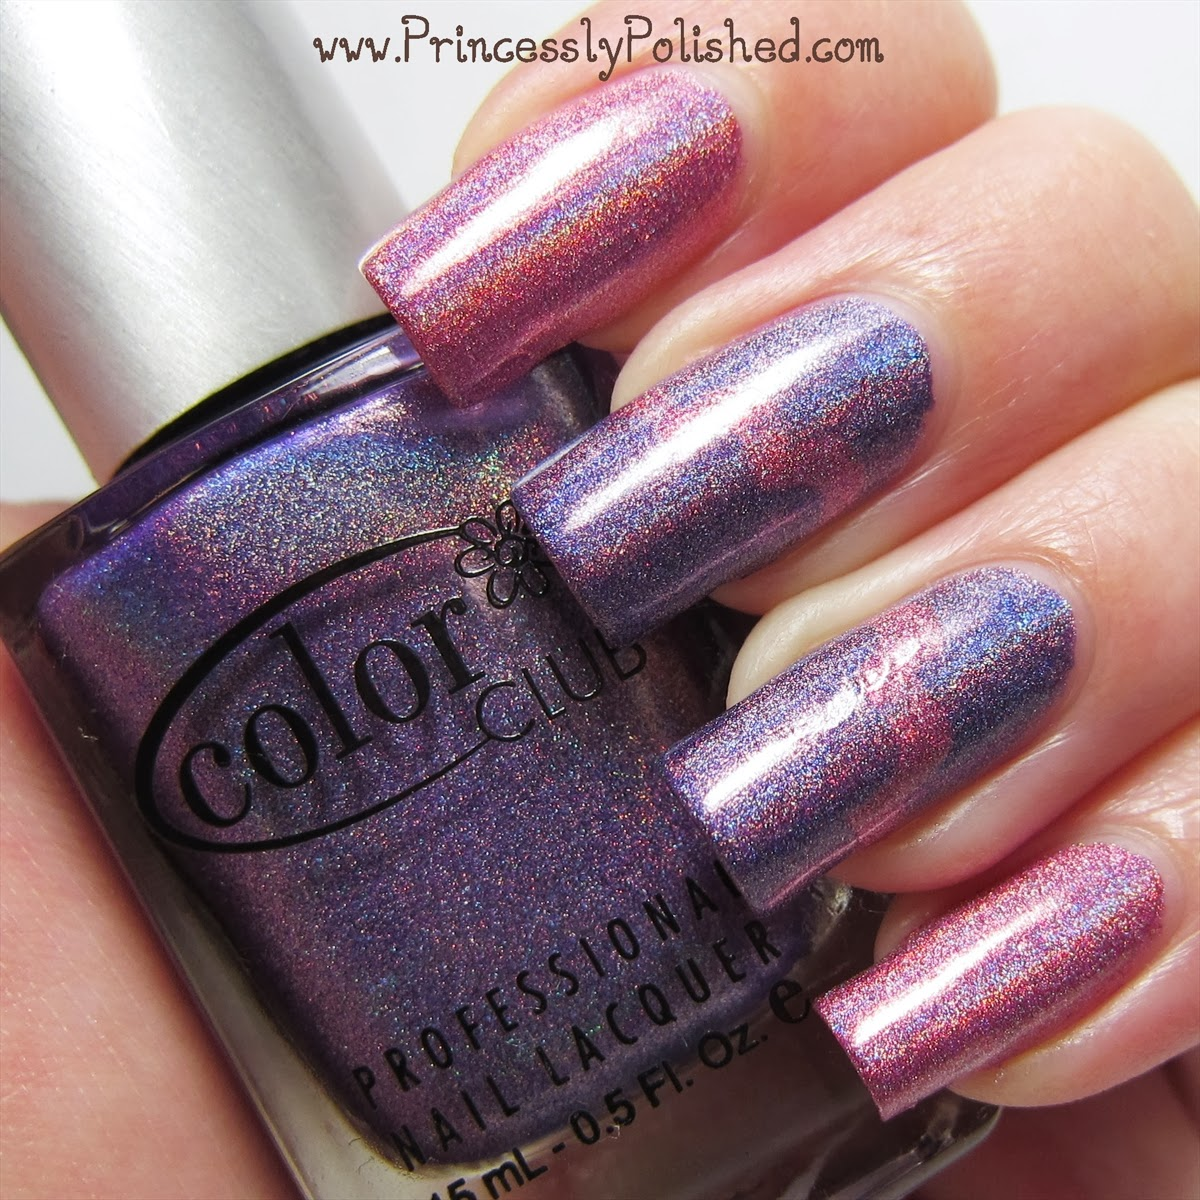 Princessly Polished: Color Club: Miss Bliss & Eternal Beauty with ...